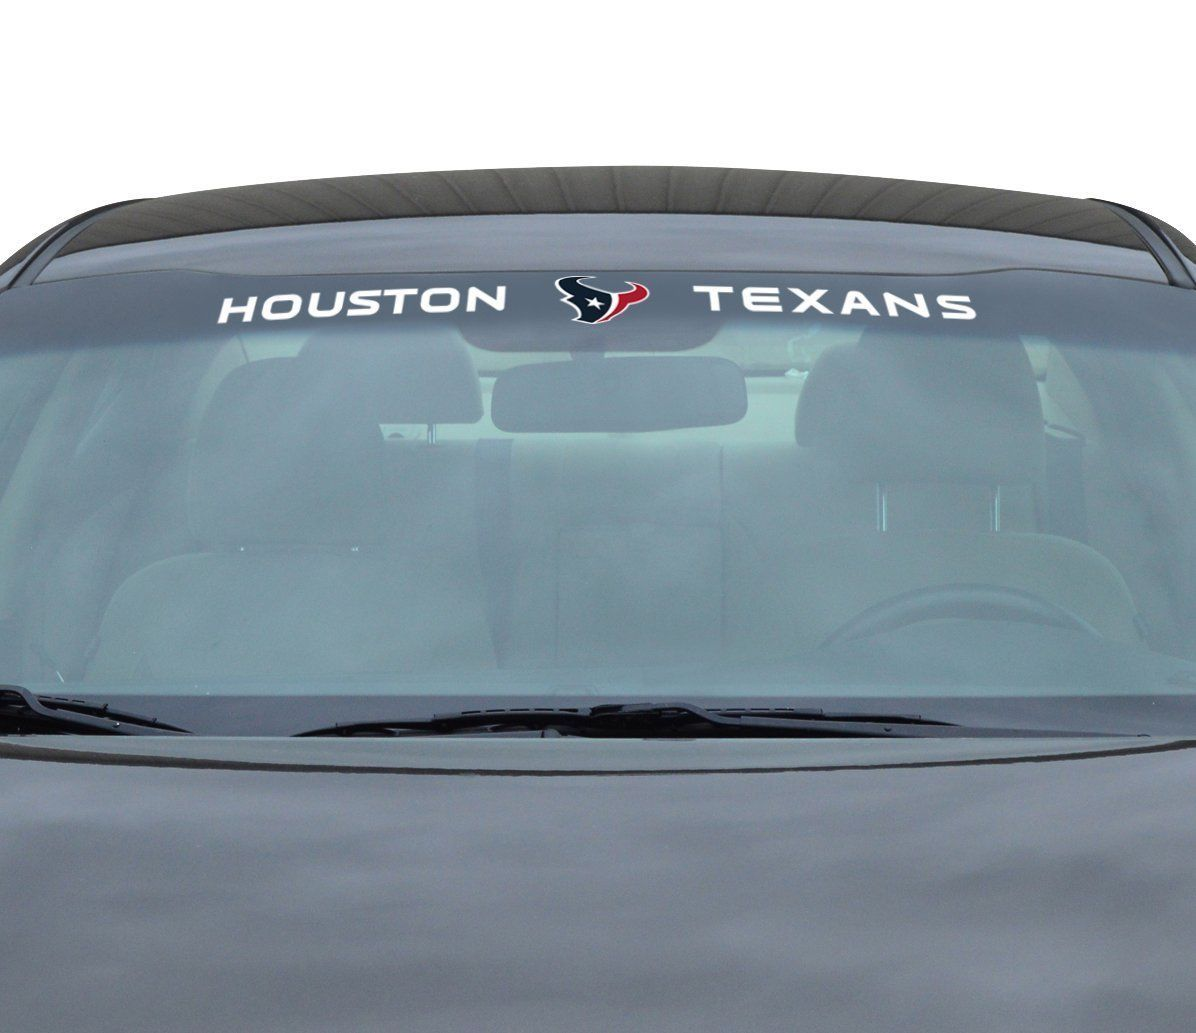 "HOUSTON TEXANS 35"" X 4"" WINDSHIELD REAR WINDOW DECAL CAR TRUCK NFL FOOTBALL"